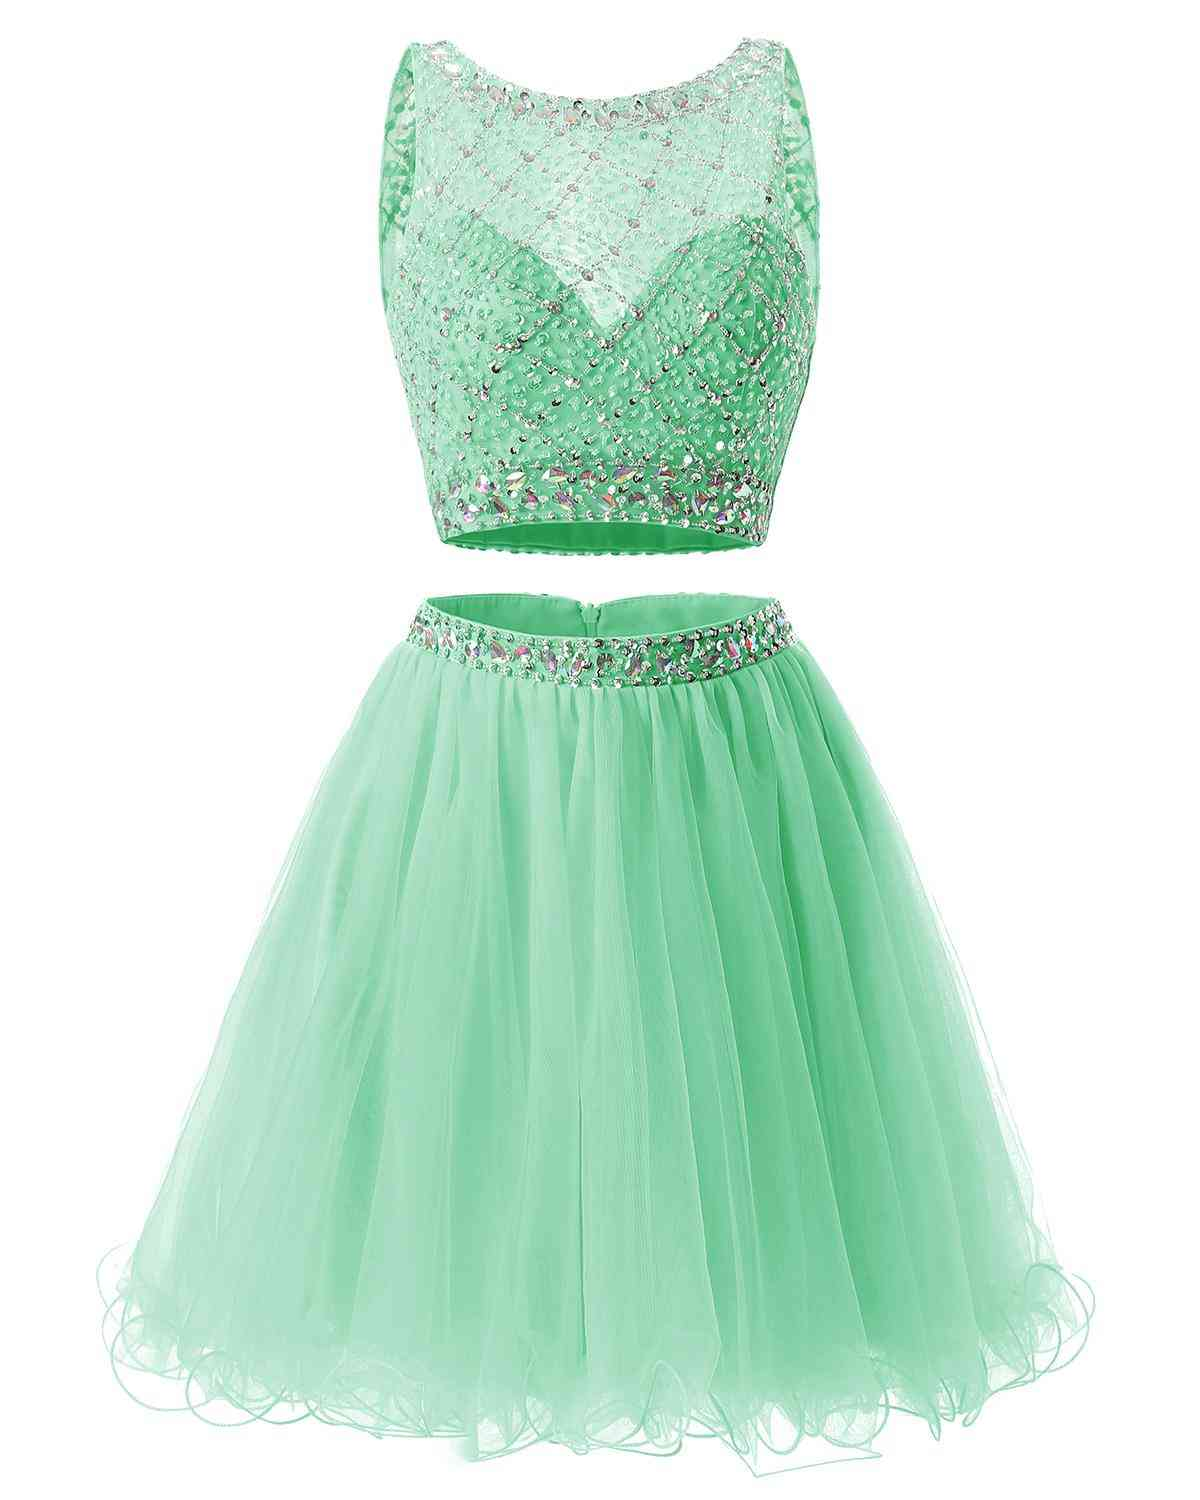 Two Pieces Tulle Party Wear Cocktail Dresses For